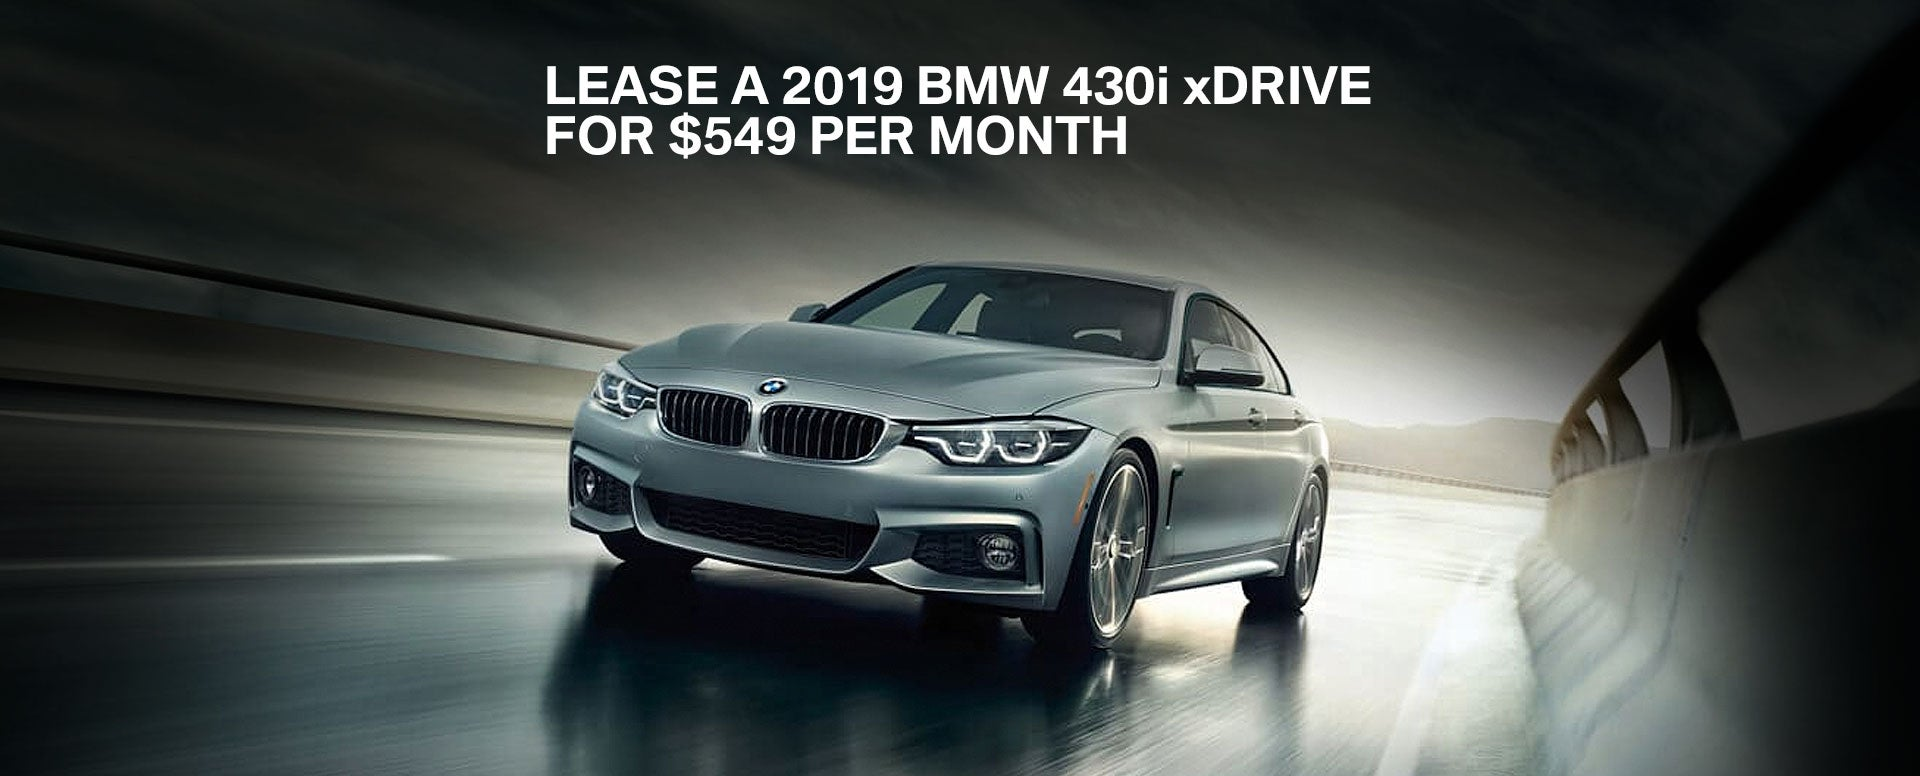 bmw workshop near me